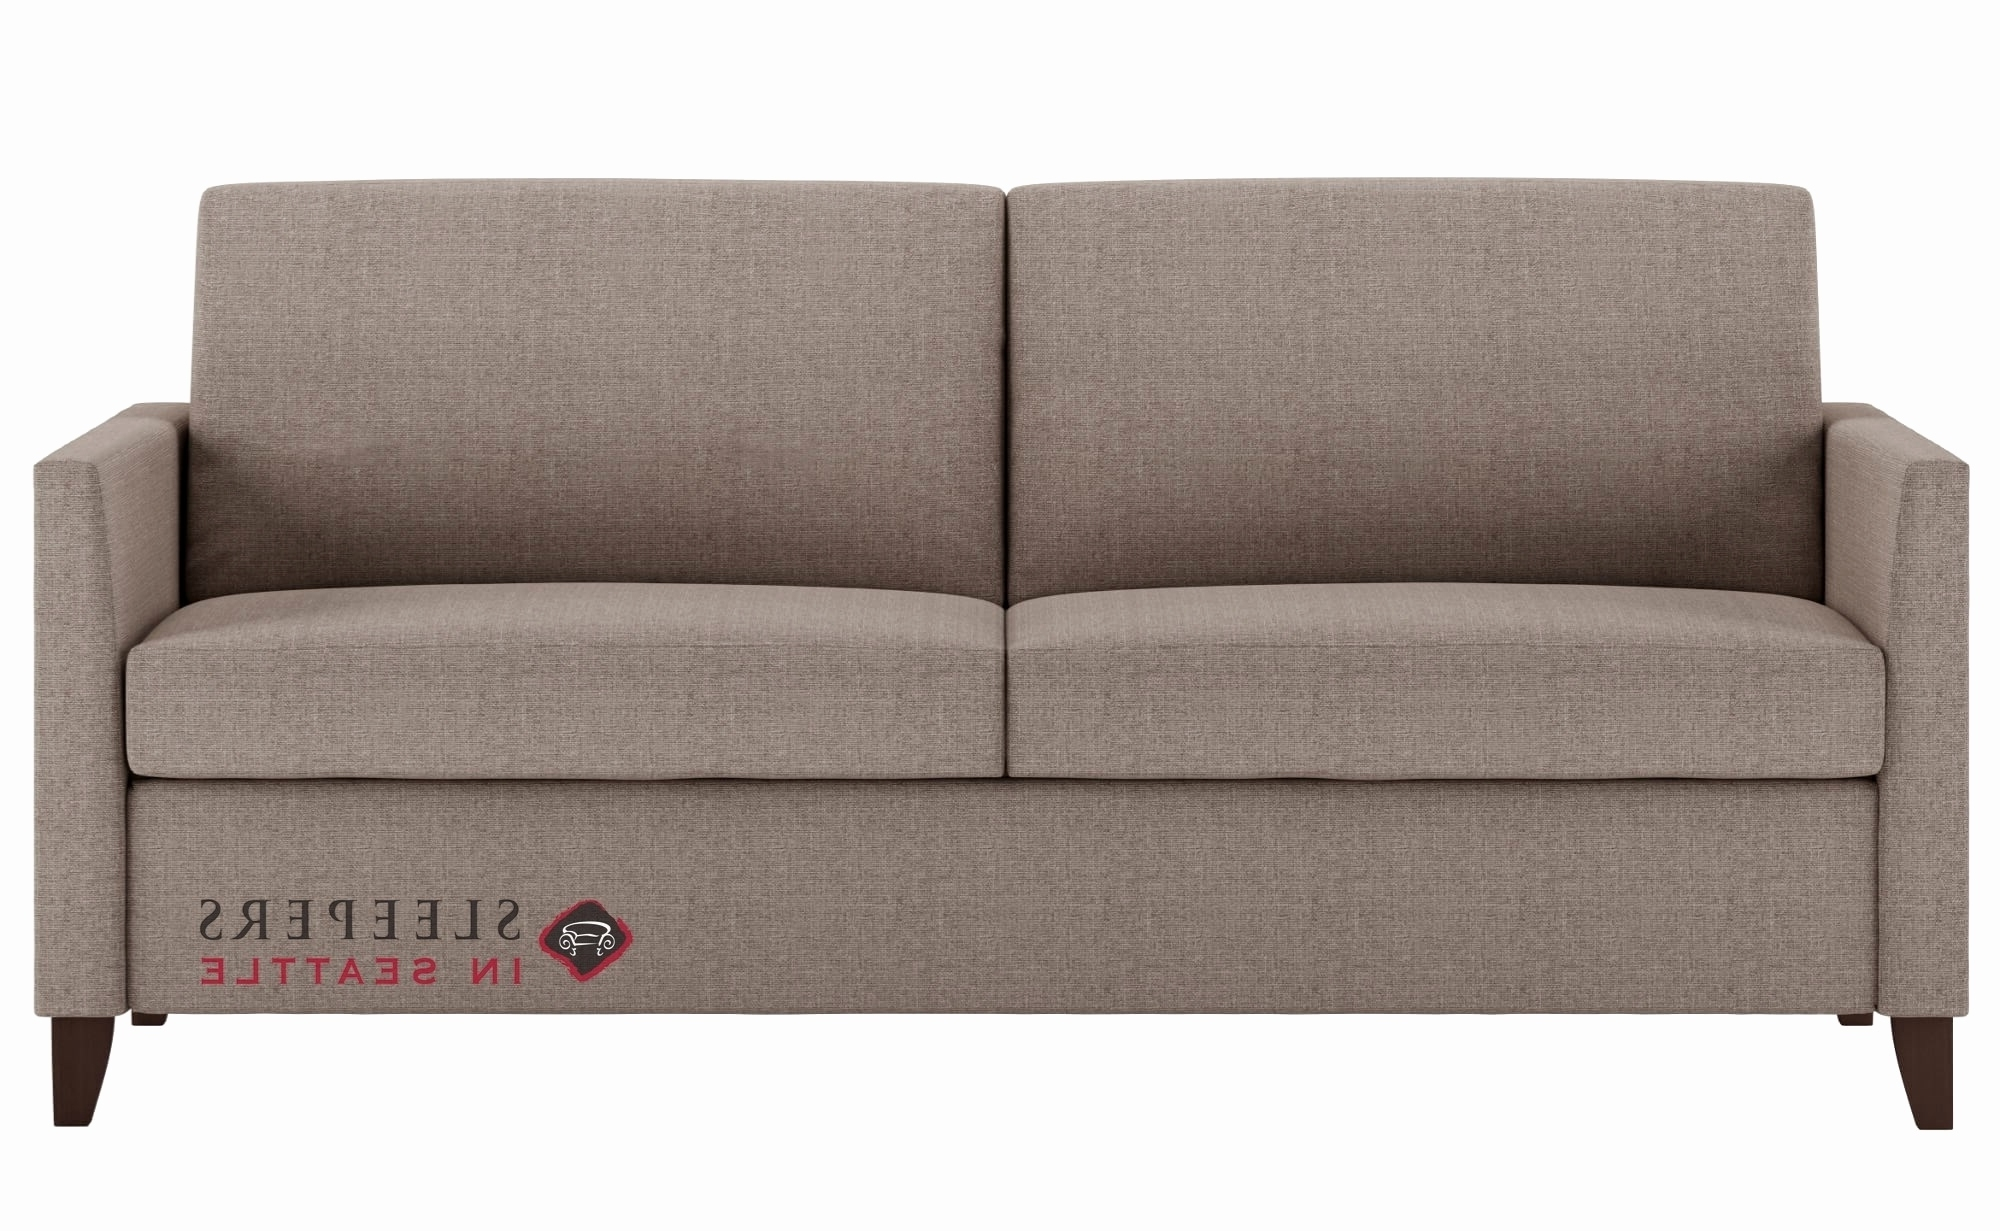 Popular Kijiji London Sectional Sofas Within Fresh Sectional Sofa Beds For Small Spaces 2018 – Couches And (View 18 of 20)